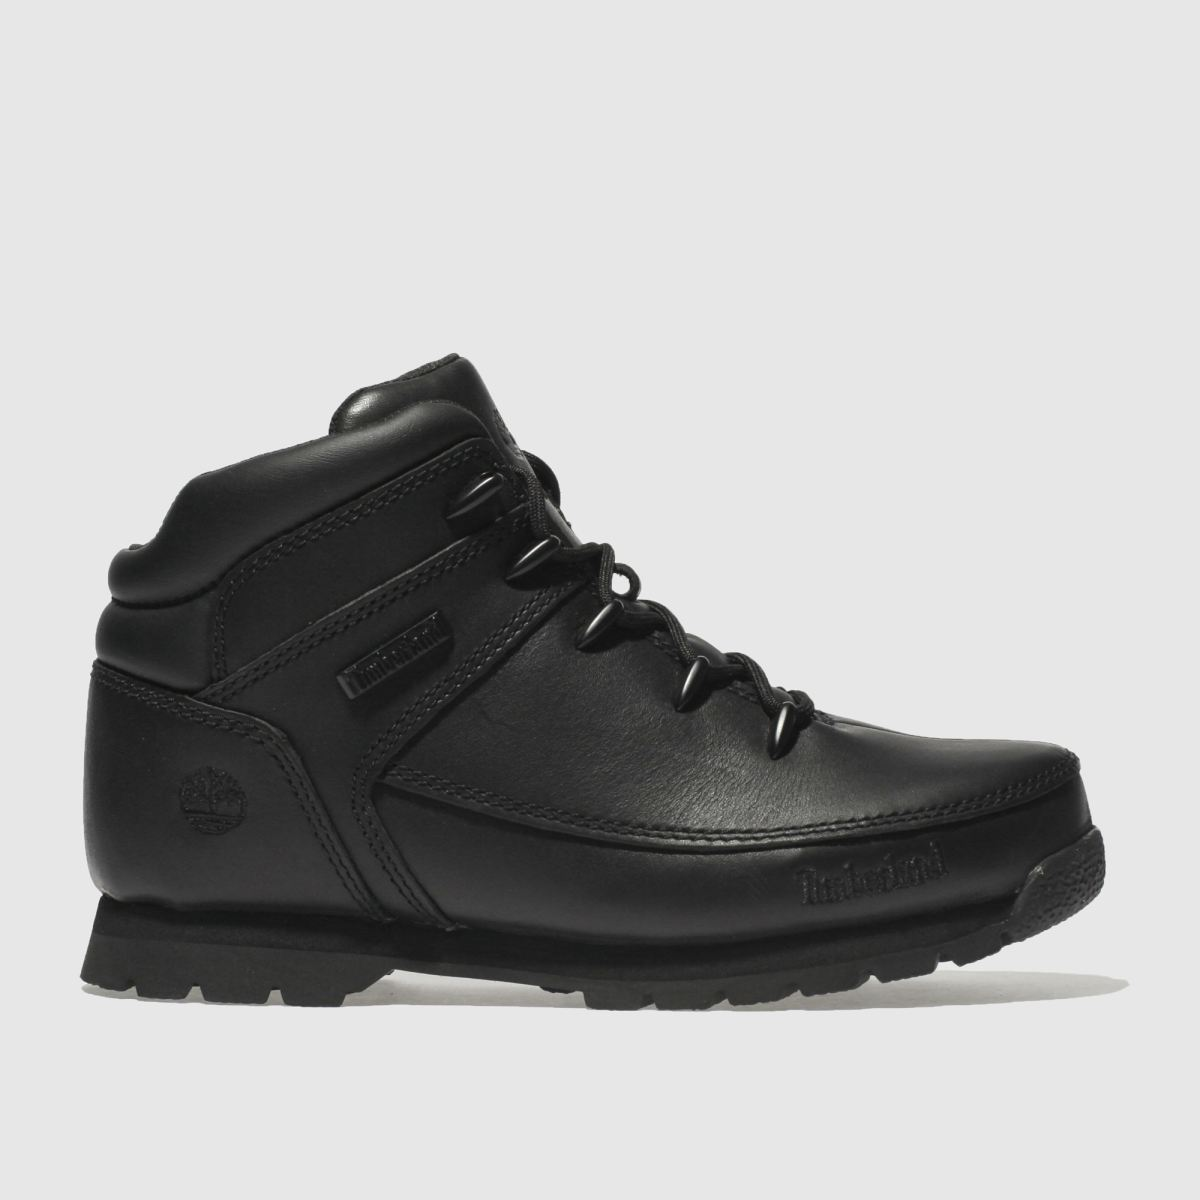 Timberland Black Euro Sprint Unisex Youth Youth